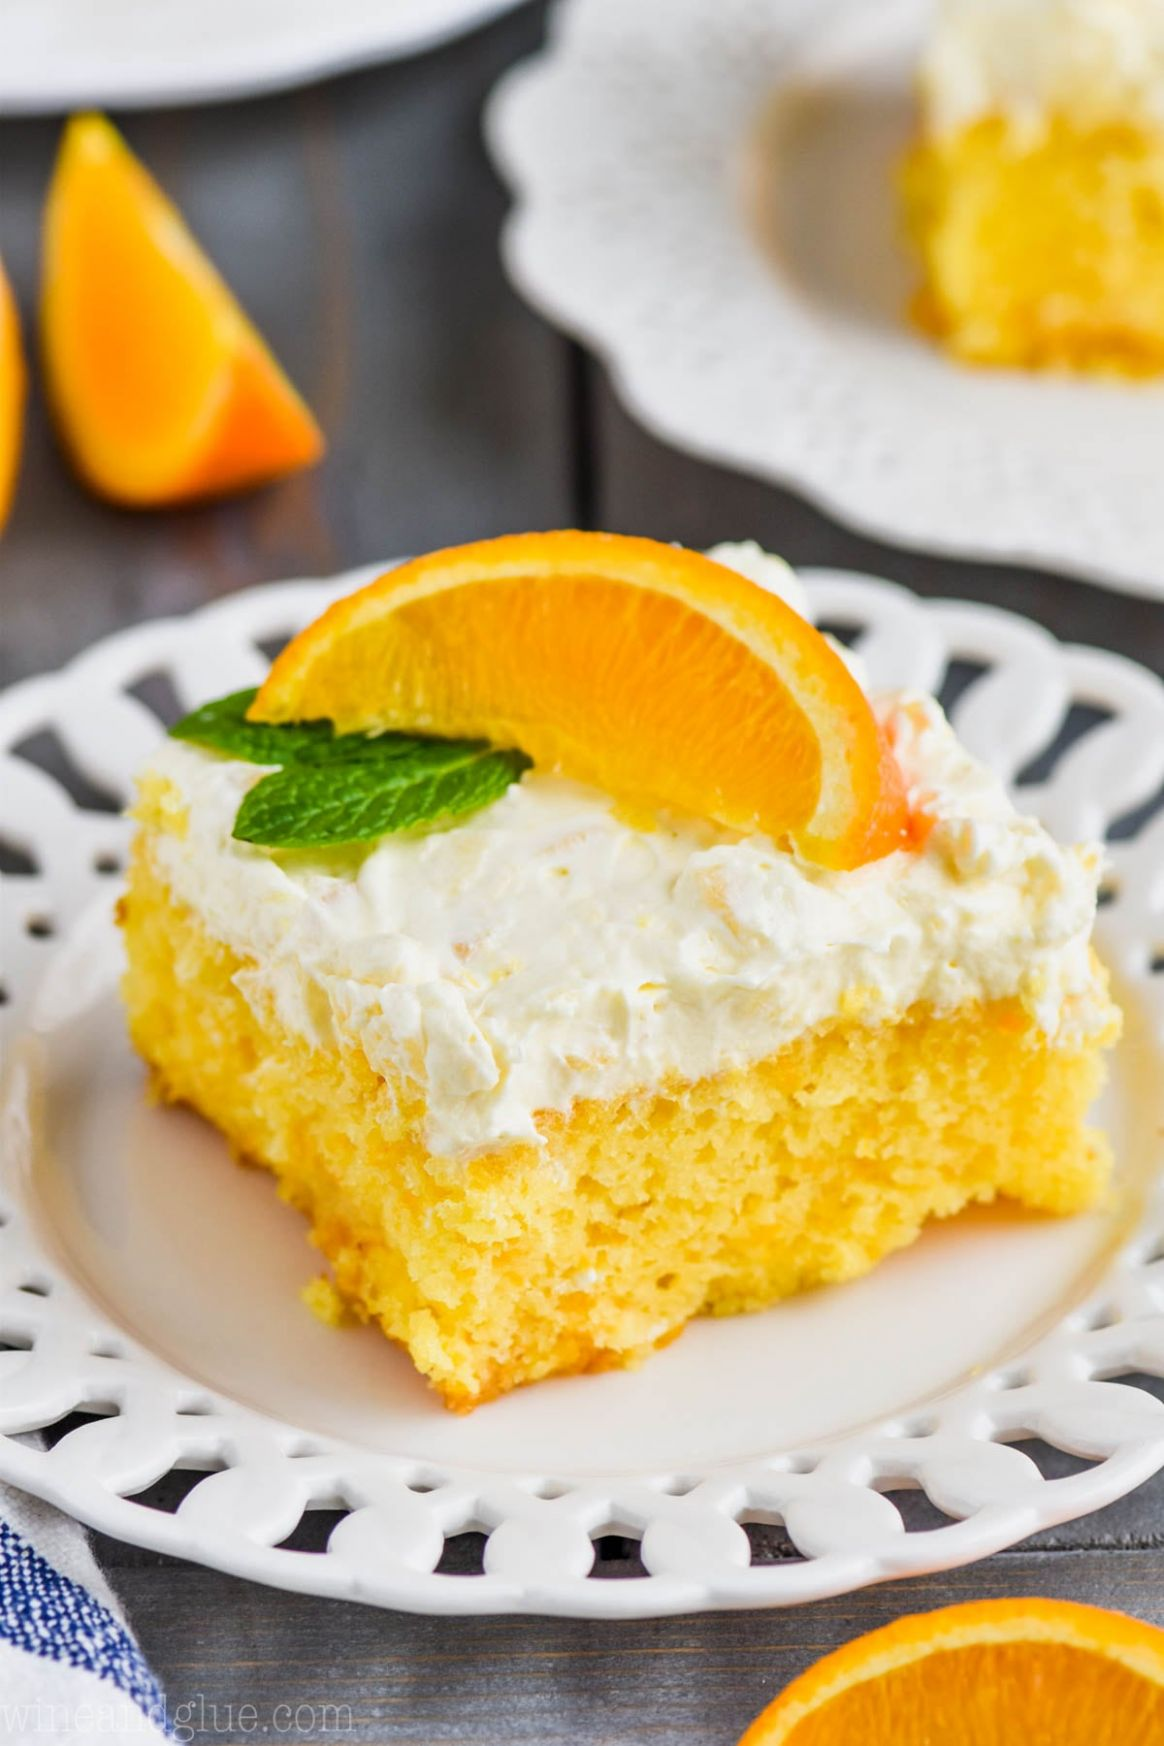 Mandarin Orange Cake Recipe - Recipes Orange Cake